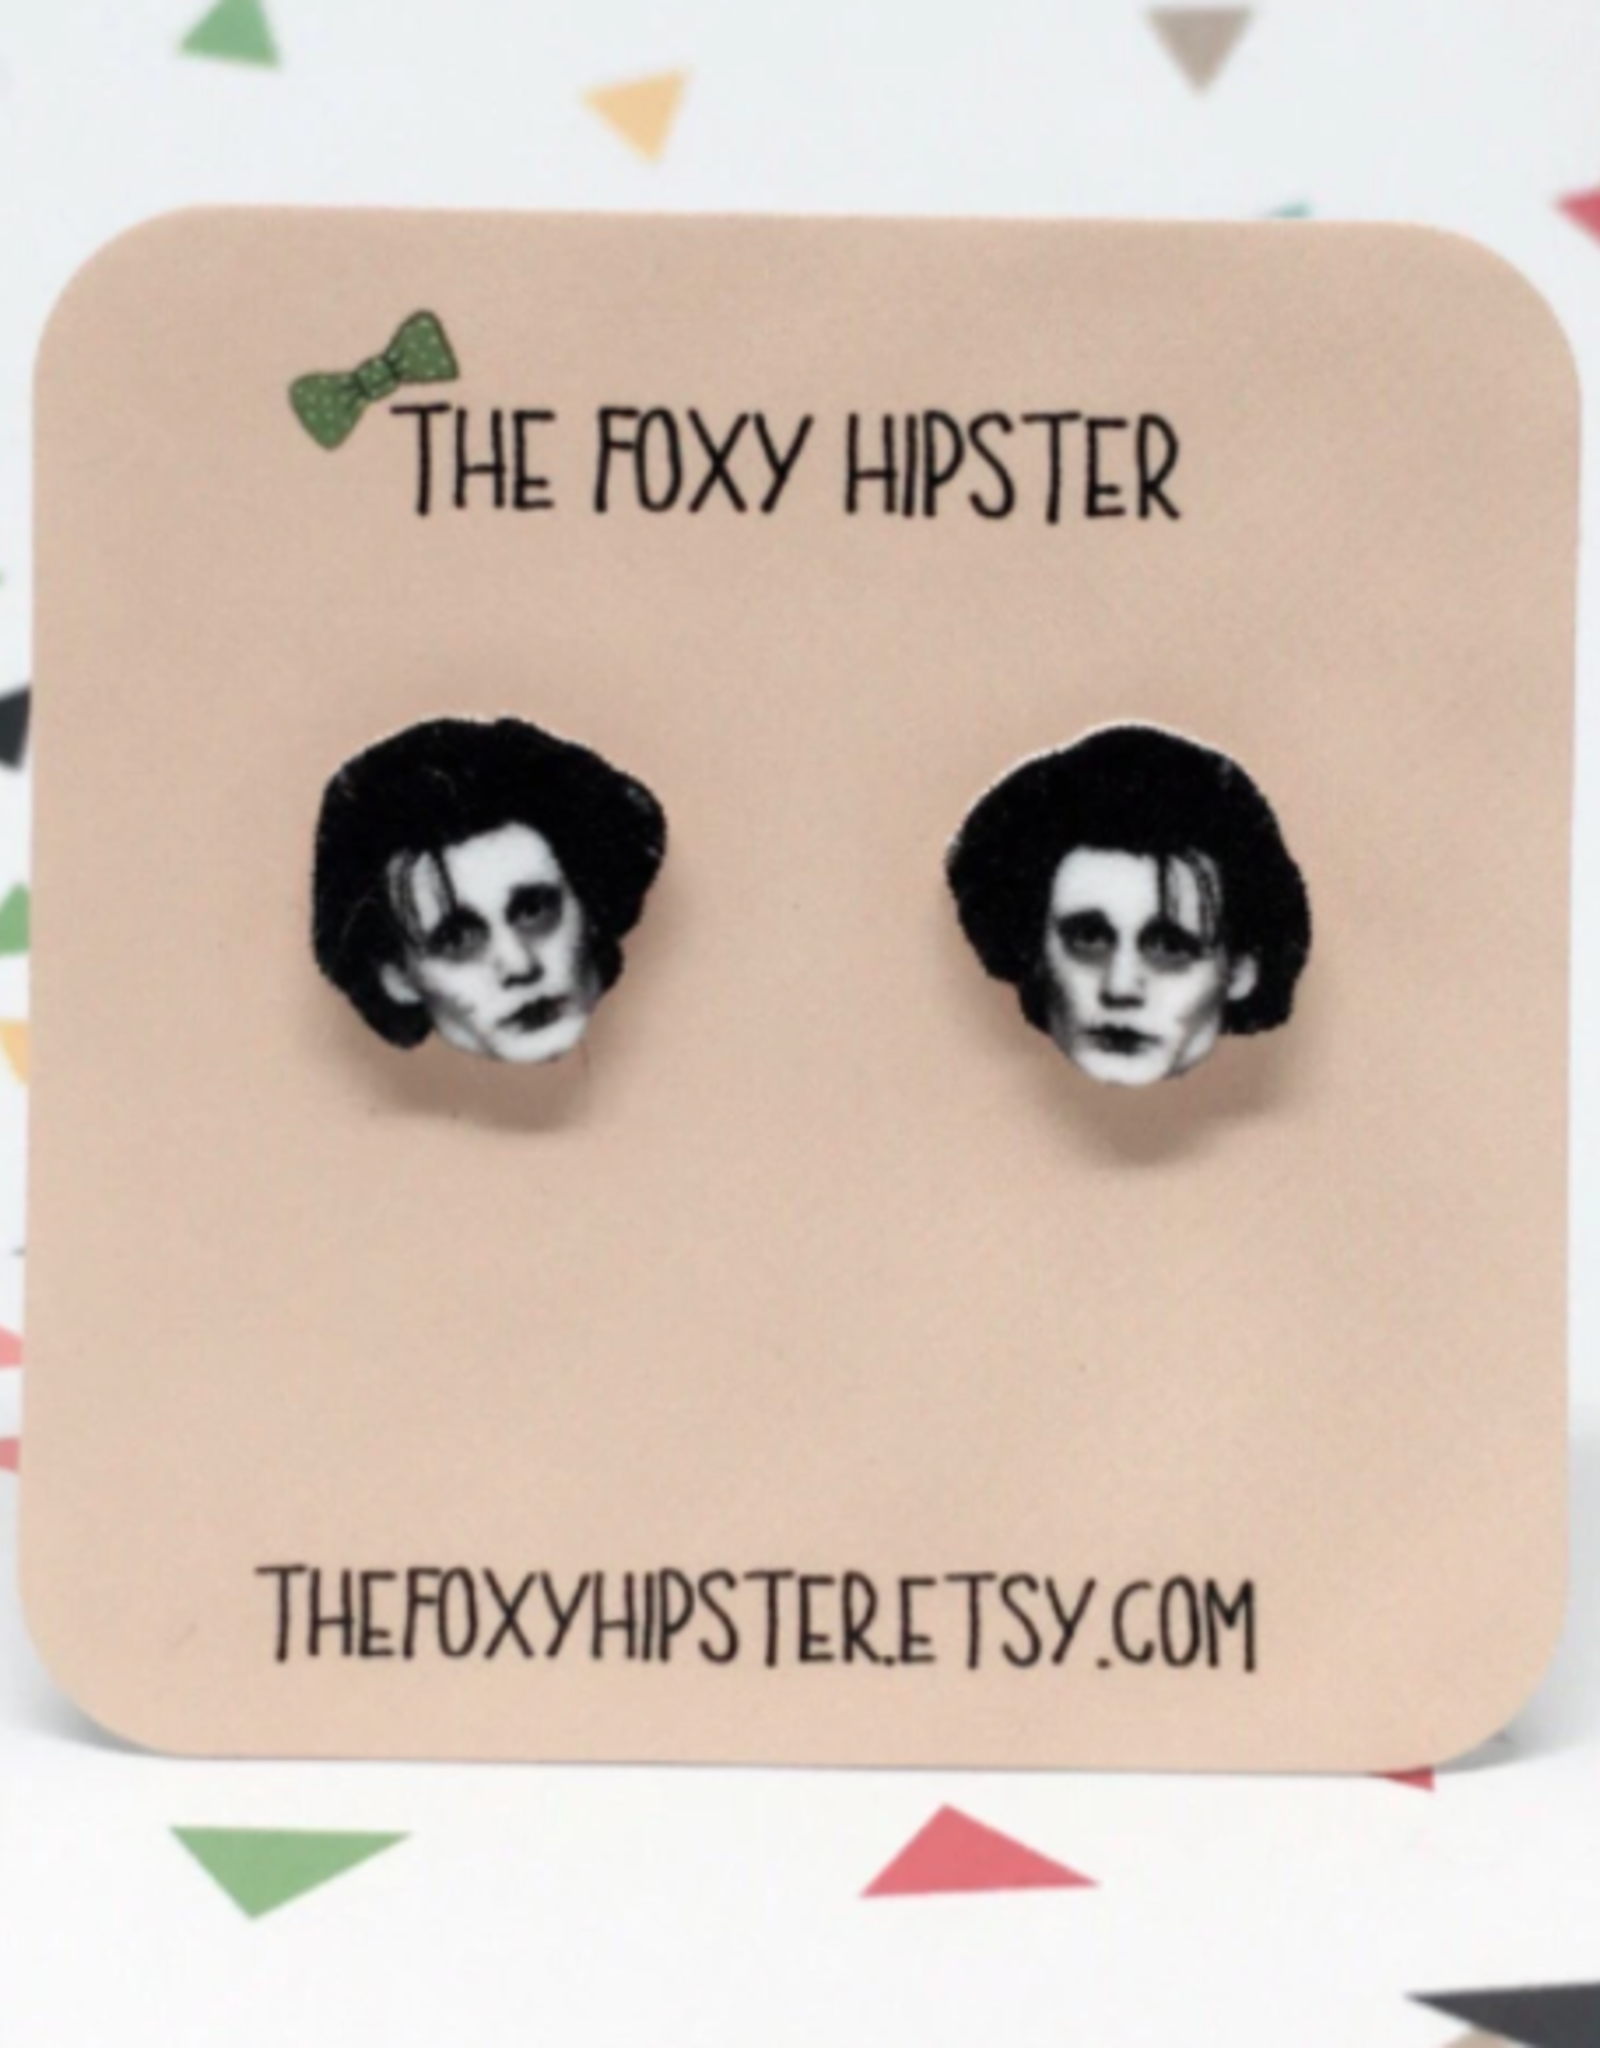 The Foxy Hipster Edward Scissorhands Shrinky Dink Post Earrings - The Foxy Hipster